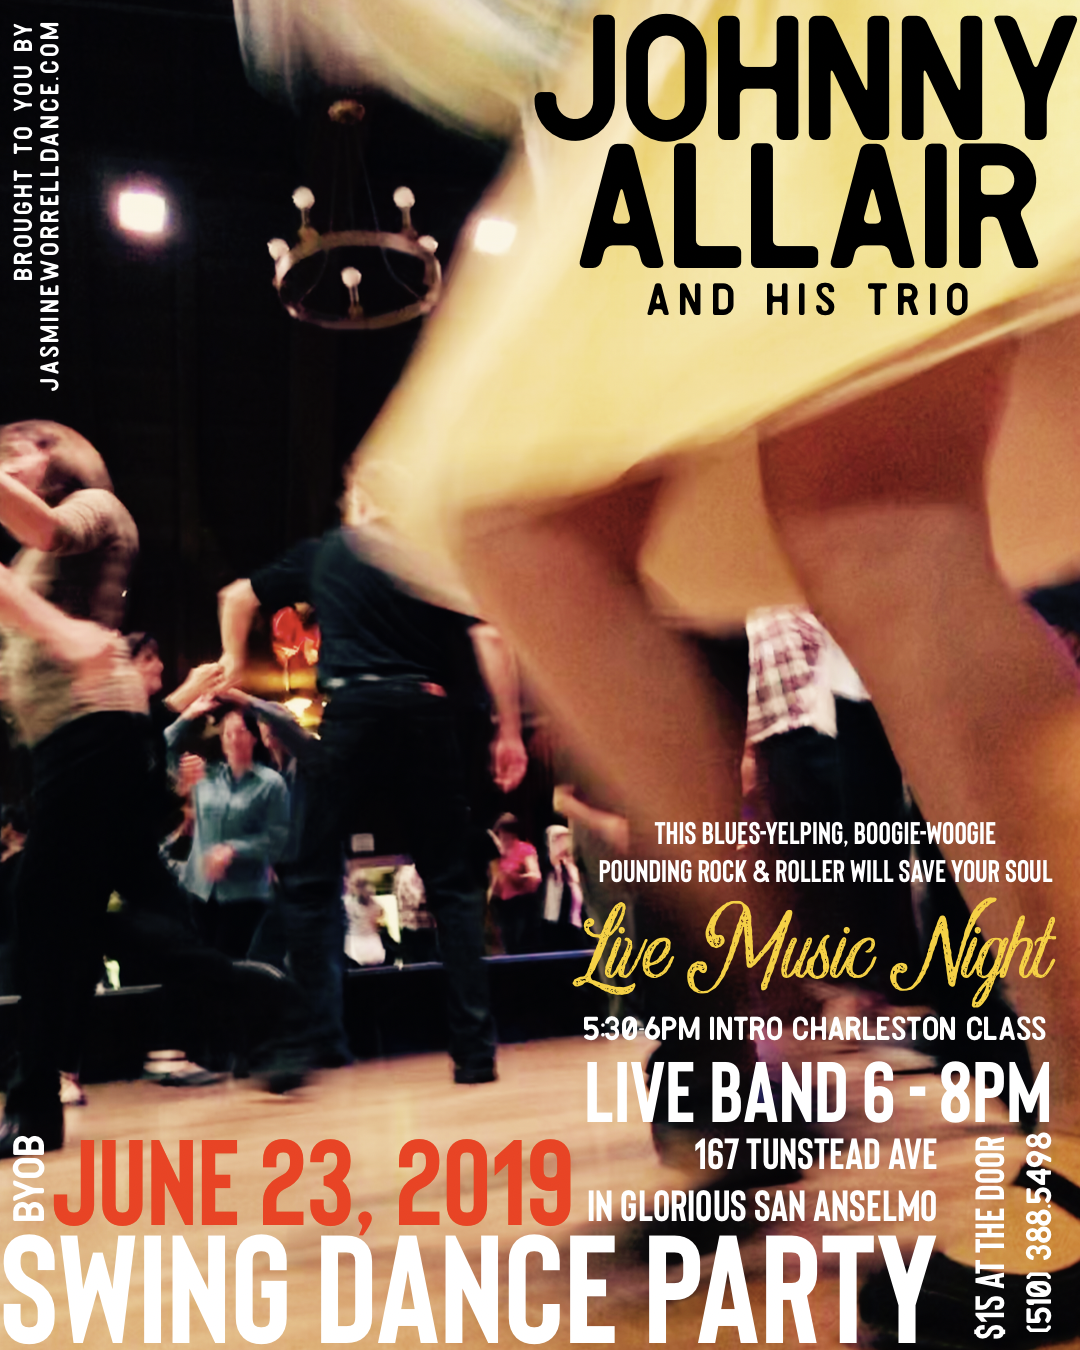 Let's come together and enjoy dancing to live music with JOHNNY ALLAIR and his trio. This will be a party open to everyone + optional intro to Charleston swing dance lesson in San Anselmo. Please join us on the dance floor. Open to all! XO   • Charleston Swing Dance Lesson: 5:30-6PM. • Live Band & Swing Dancing: 6PM and runs until 8PM • BYOB  JOHNNY ALLIAR plays our party! This trio plays live boogie-woogie and killer blues rhythms! Pay at the door for live band + dancing from 5:30-8PM $15.  167 Tunstead Ave. in downtown San Anselmo - Marin Country.